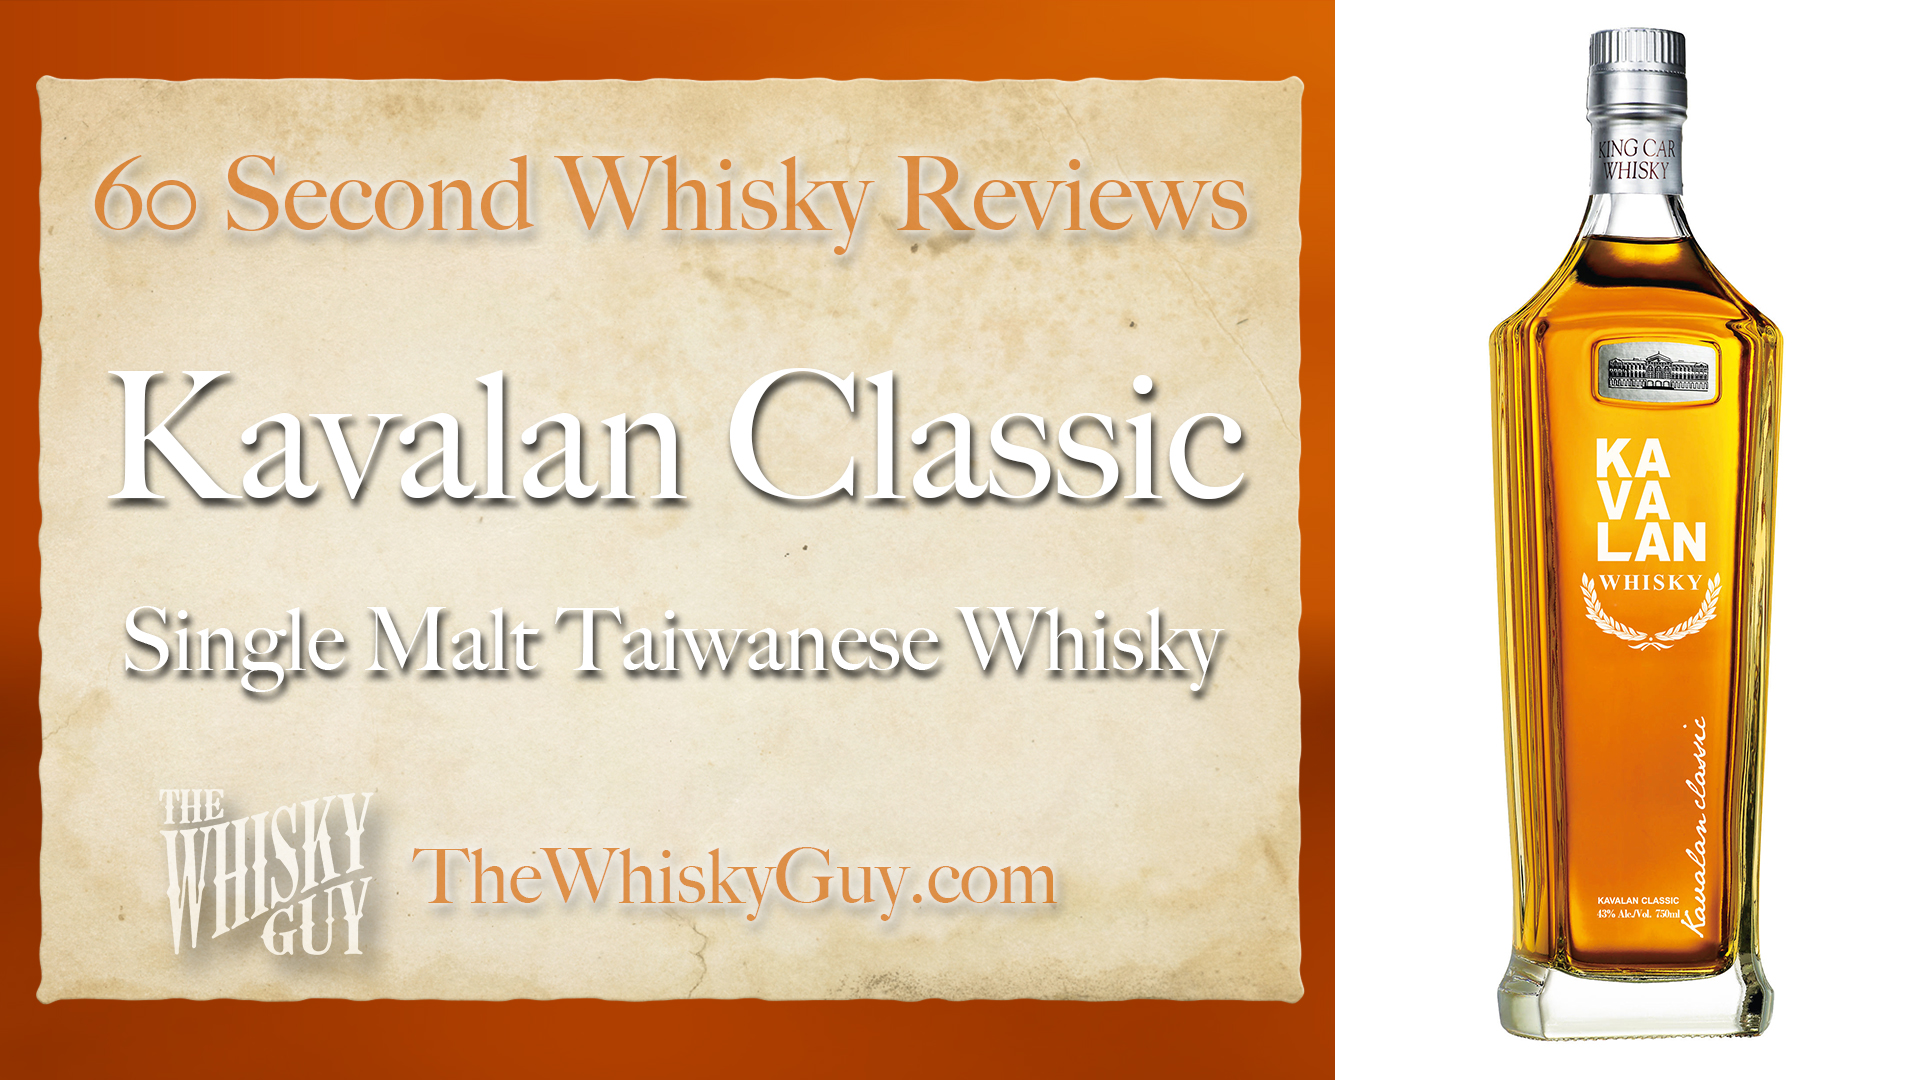 Does Kavalan Single Malt Taiwanese Whisky belong in your liquor cabinet? Is it worth the price at the bar? Give The Whisky Guy 60 seconds and find out! In just 60 seconds, The Whisky Guy reviews Irish Whiskey, Scotch Whisky, Single Malt, Canadian Whisky, Bourbon Whiskey, Japanese Whisky and other whiskies from around the world. Find more at TheWhiskyGuy.com. All original content © Ari Shapiro - TheWhiskyGuy.com